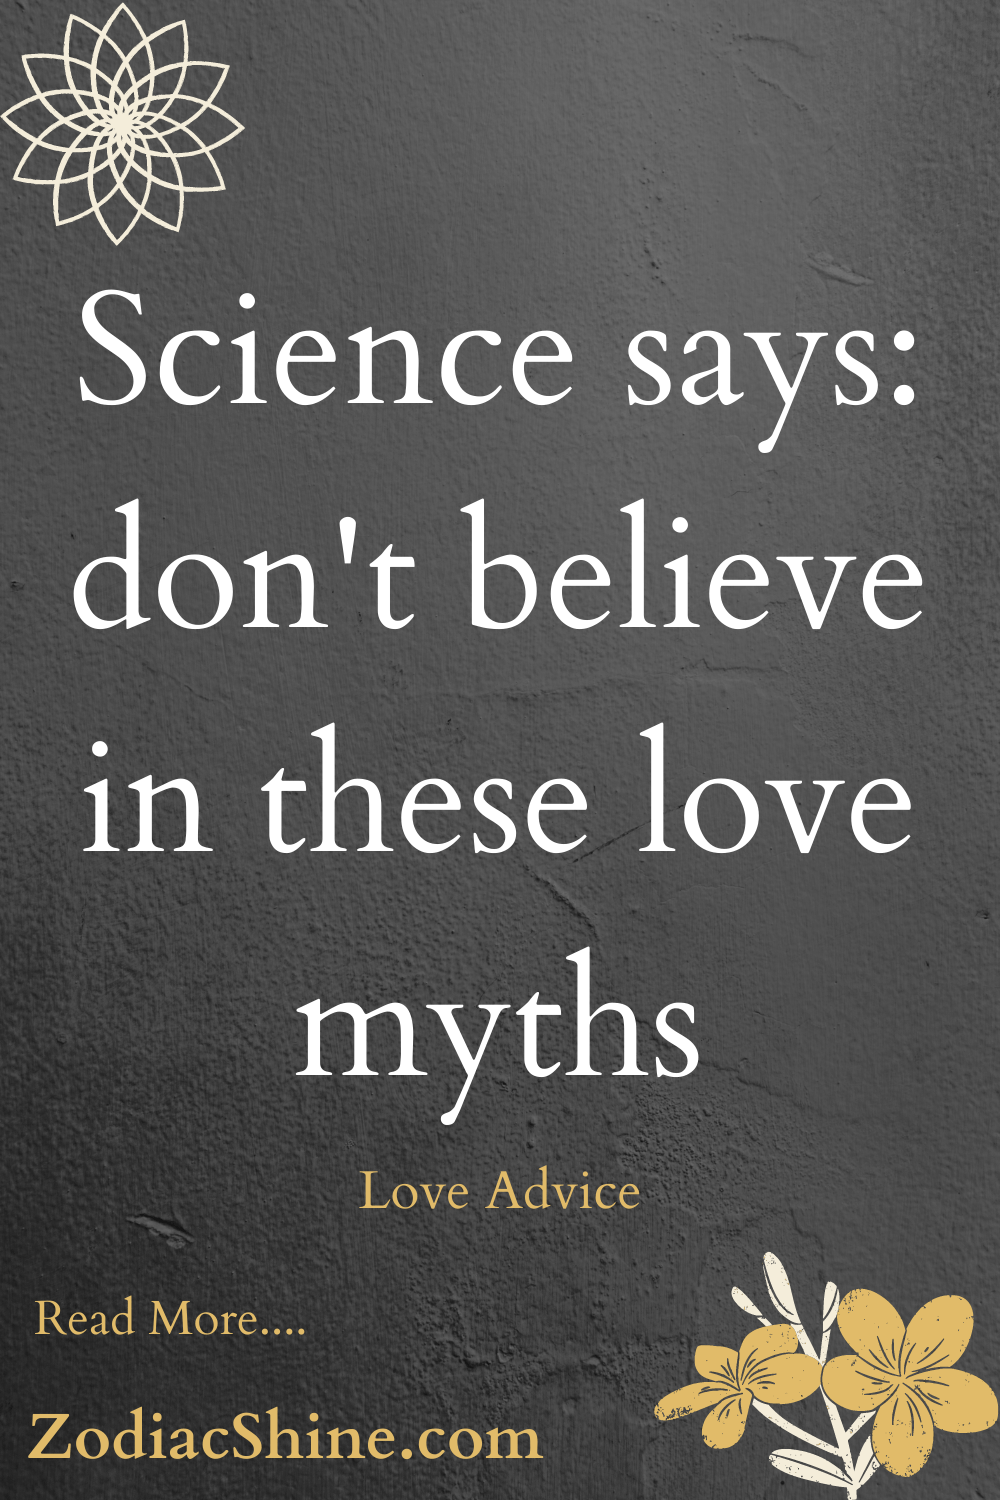 Science says: don't believe in these love myths